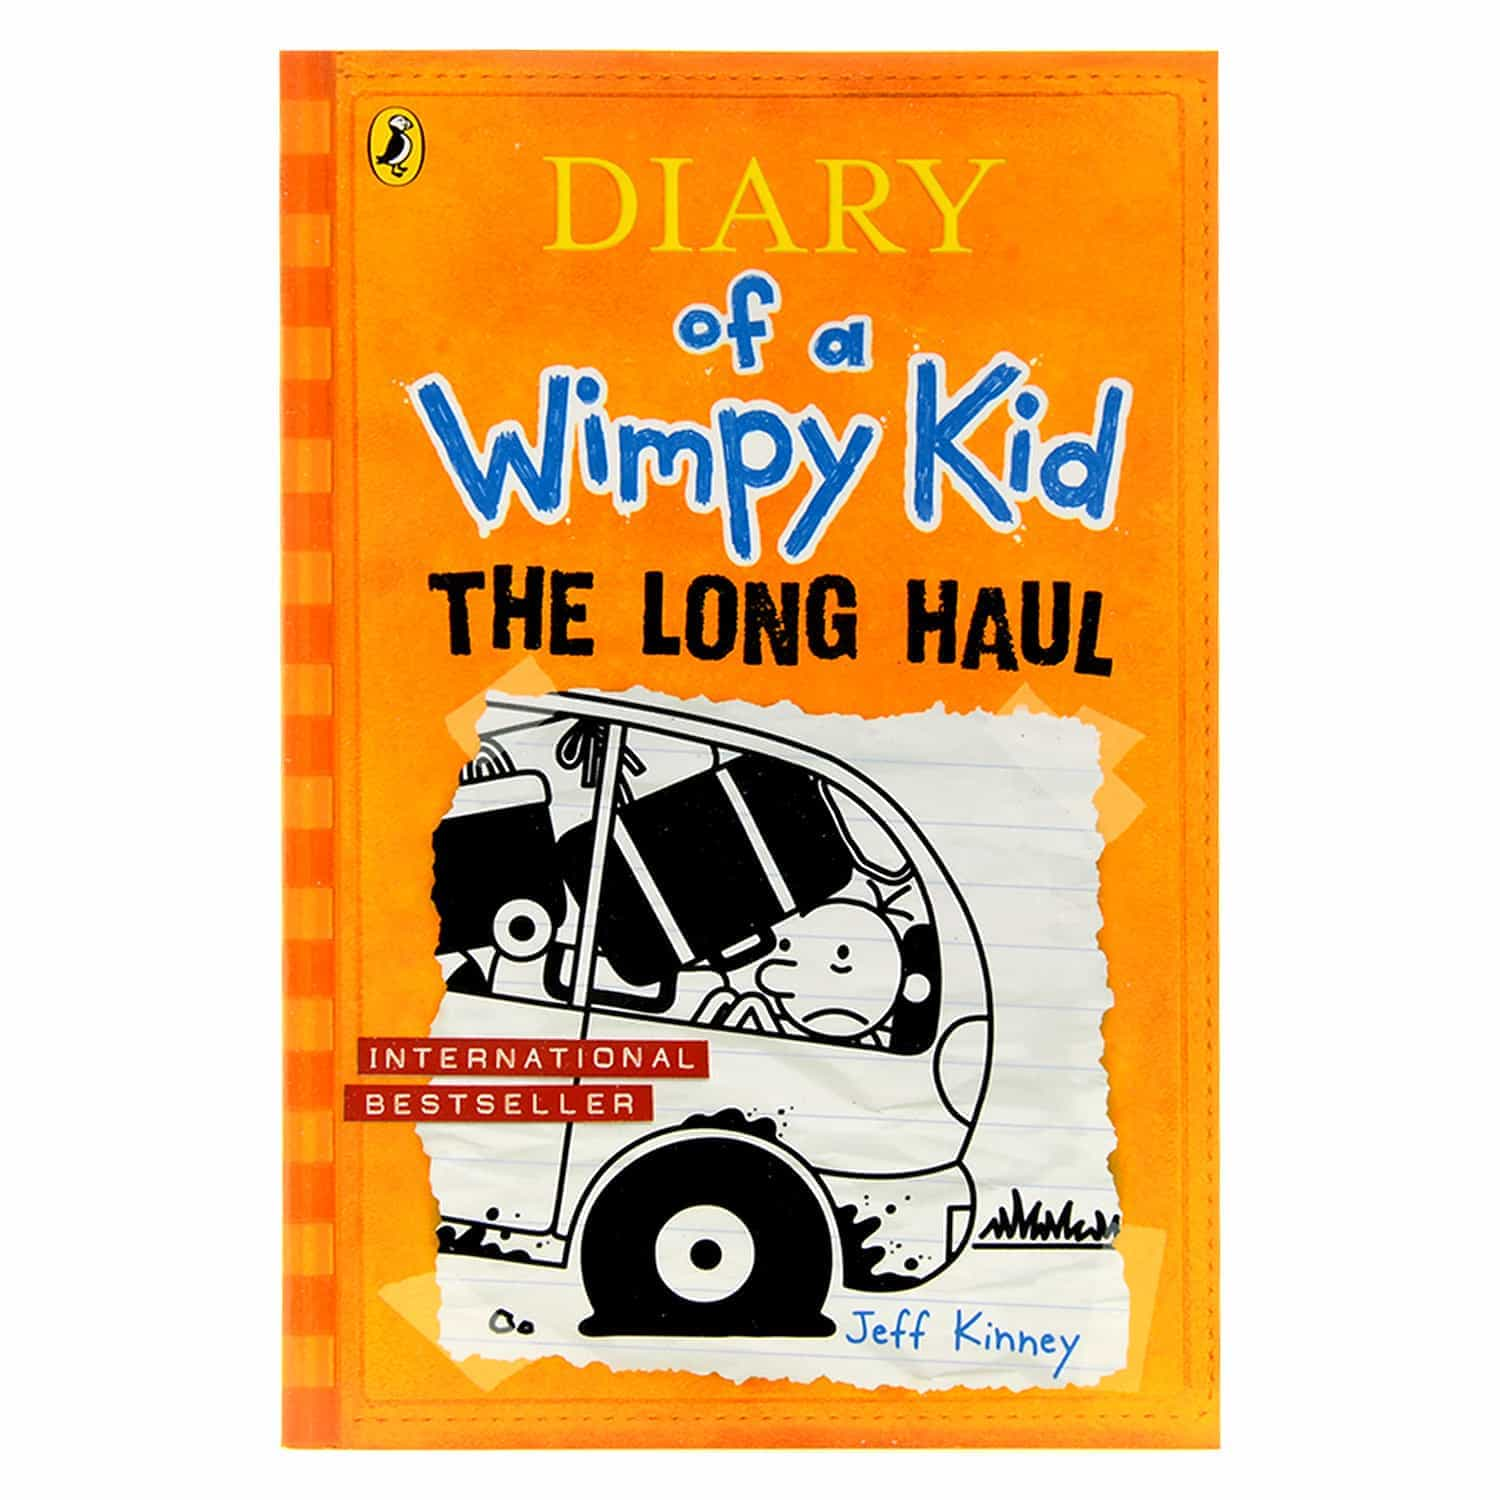 Diary of a Wimpy Kid Series- The Long Haul